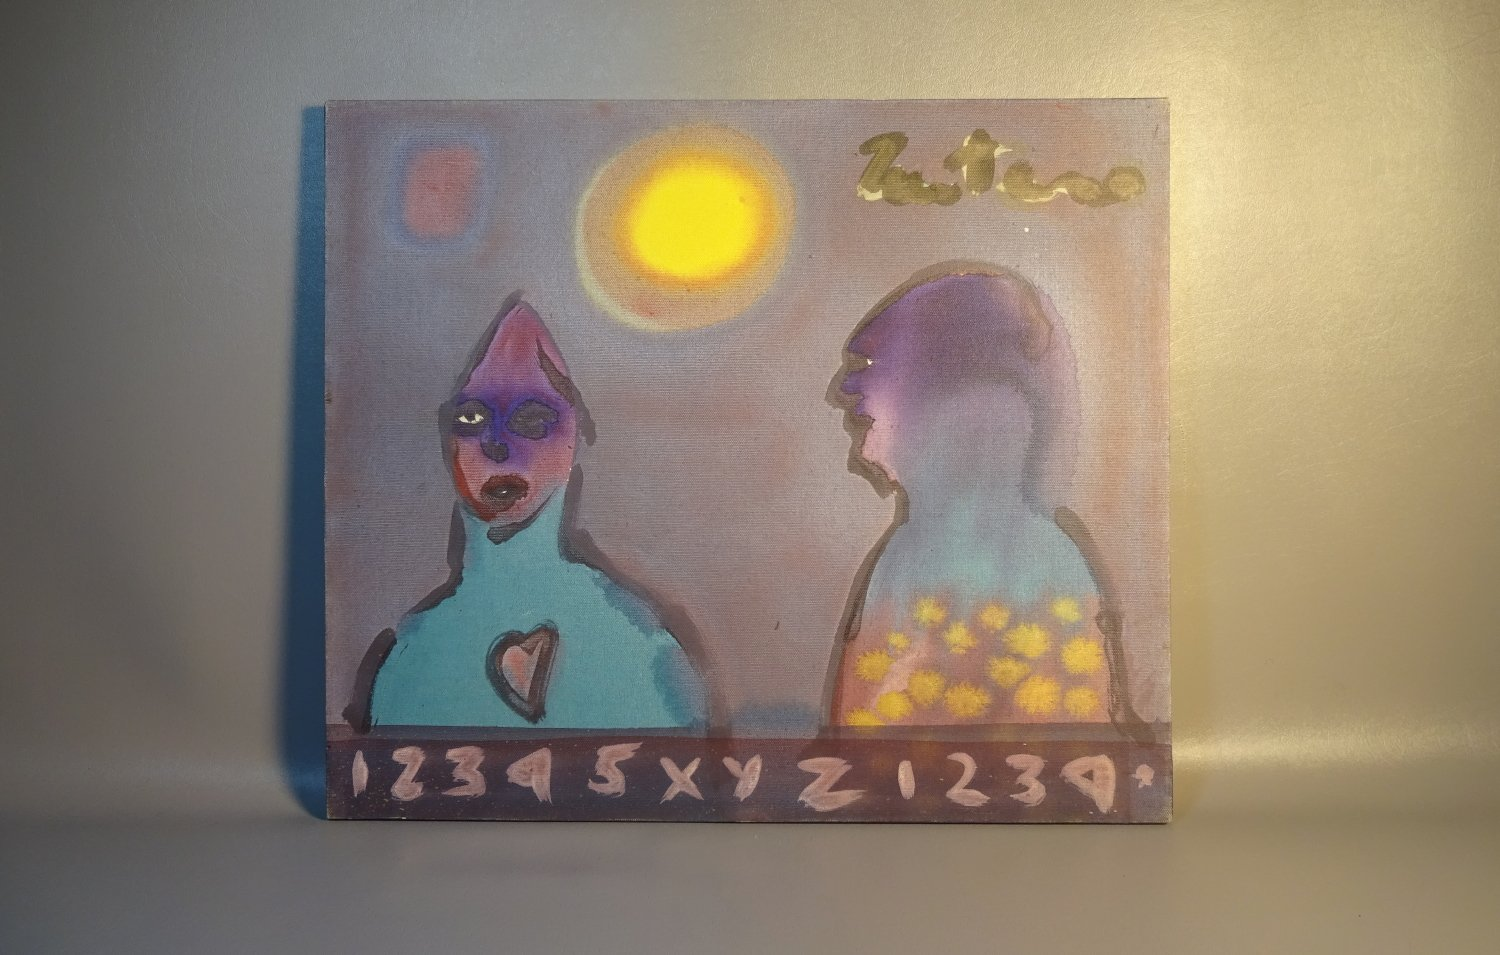 Abstract Acrylic Painting On Canvas Modern Surrealism Style w/2 Figures